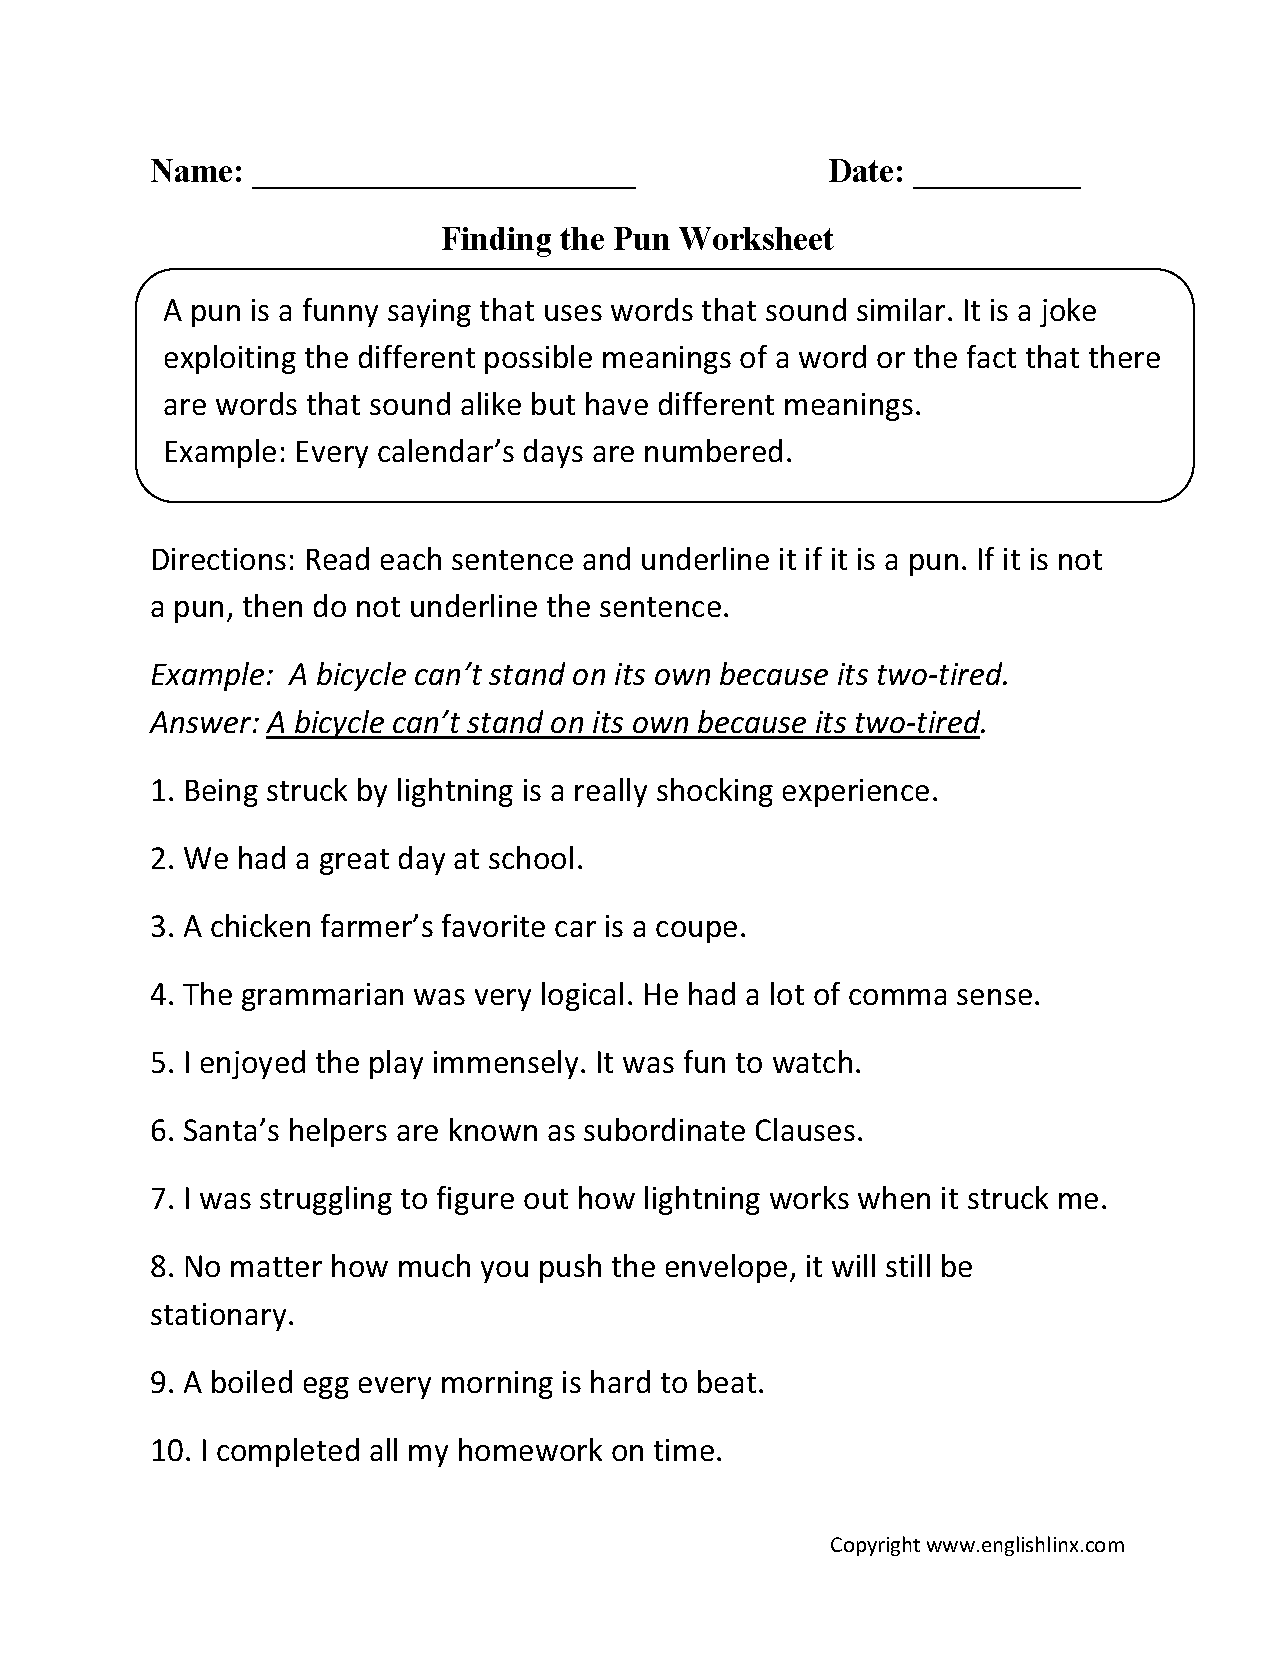 Worksheet Fact Finding Worksheet Carlos Lomas Worksheet For Everyone